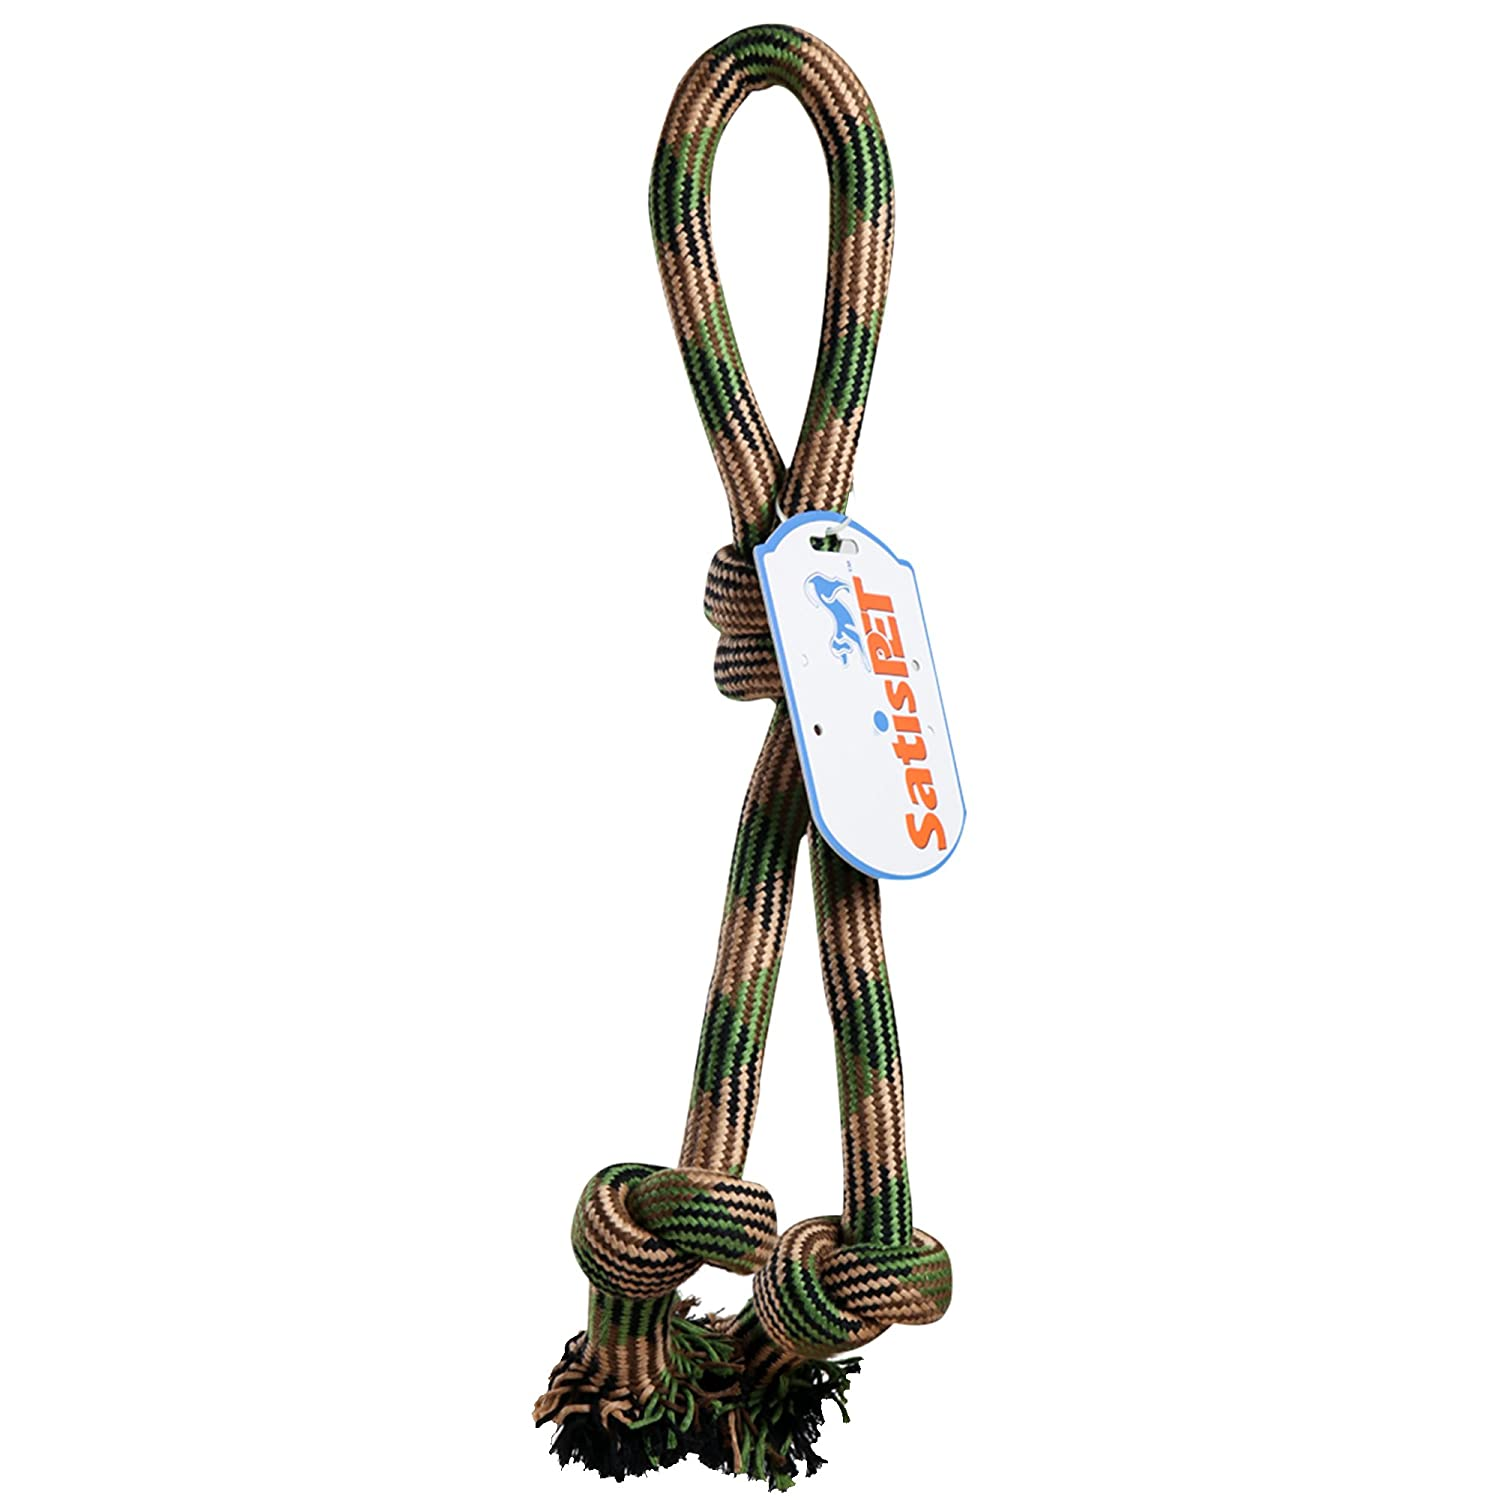 Pet Supplies SatisPet 24 Inch Knotted Woven Rope Tug Chew Toy